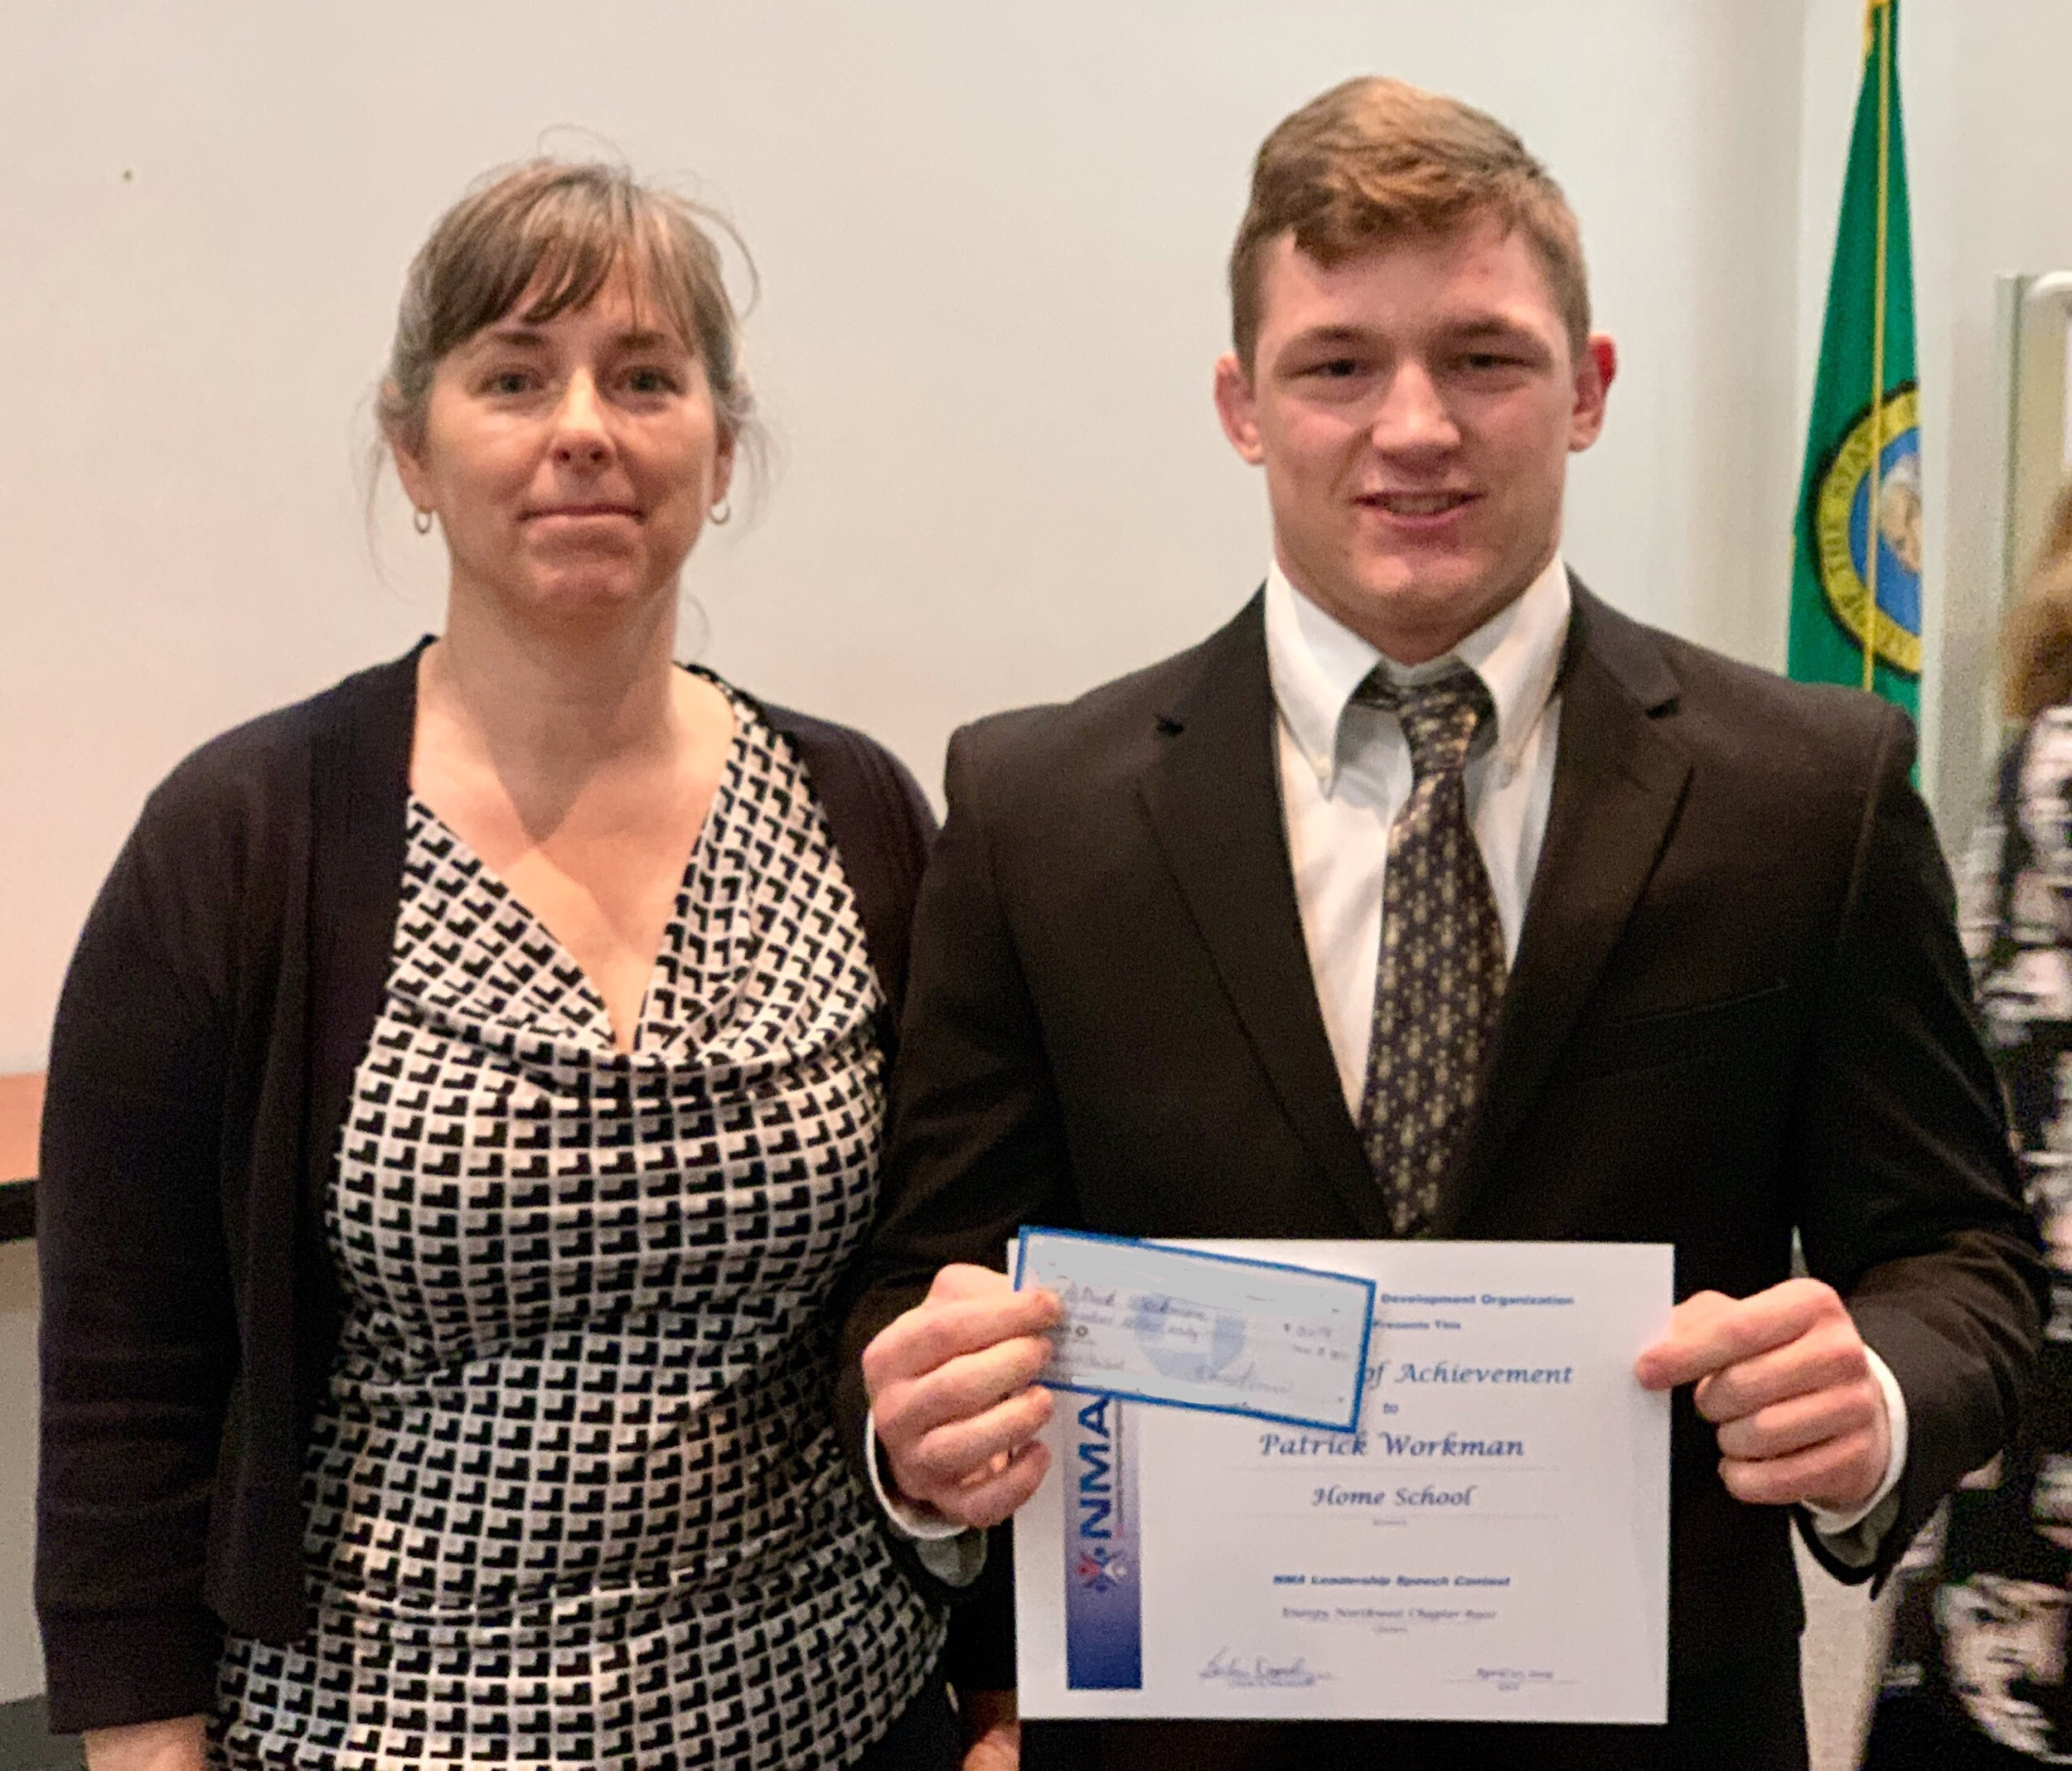 COuncil Speech Contest winner Patrick Workman - Patrick will go on to the NMA Conference in Portland, Oregon this October where he will compete for a $4,000 top prize.The MCLDA and Energy Northwest NMA Chapters will help Patrick in his pursuit of a win by covering his travel expenses while he participates in the national conference.Great job Patrick!